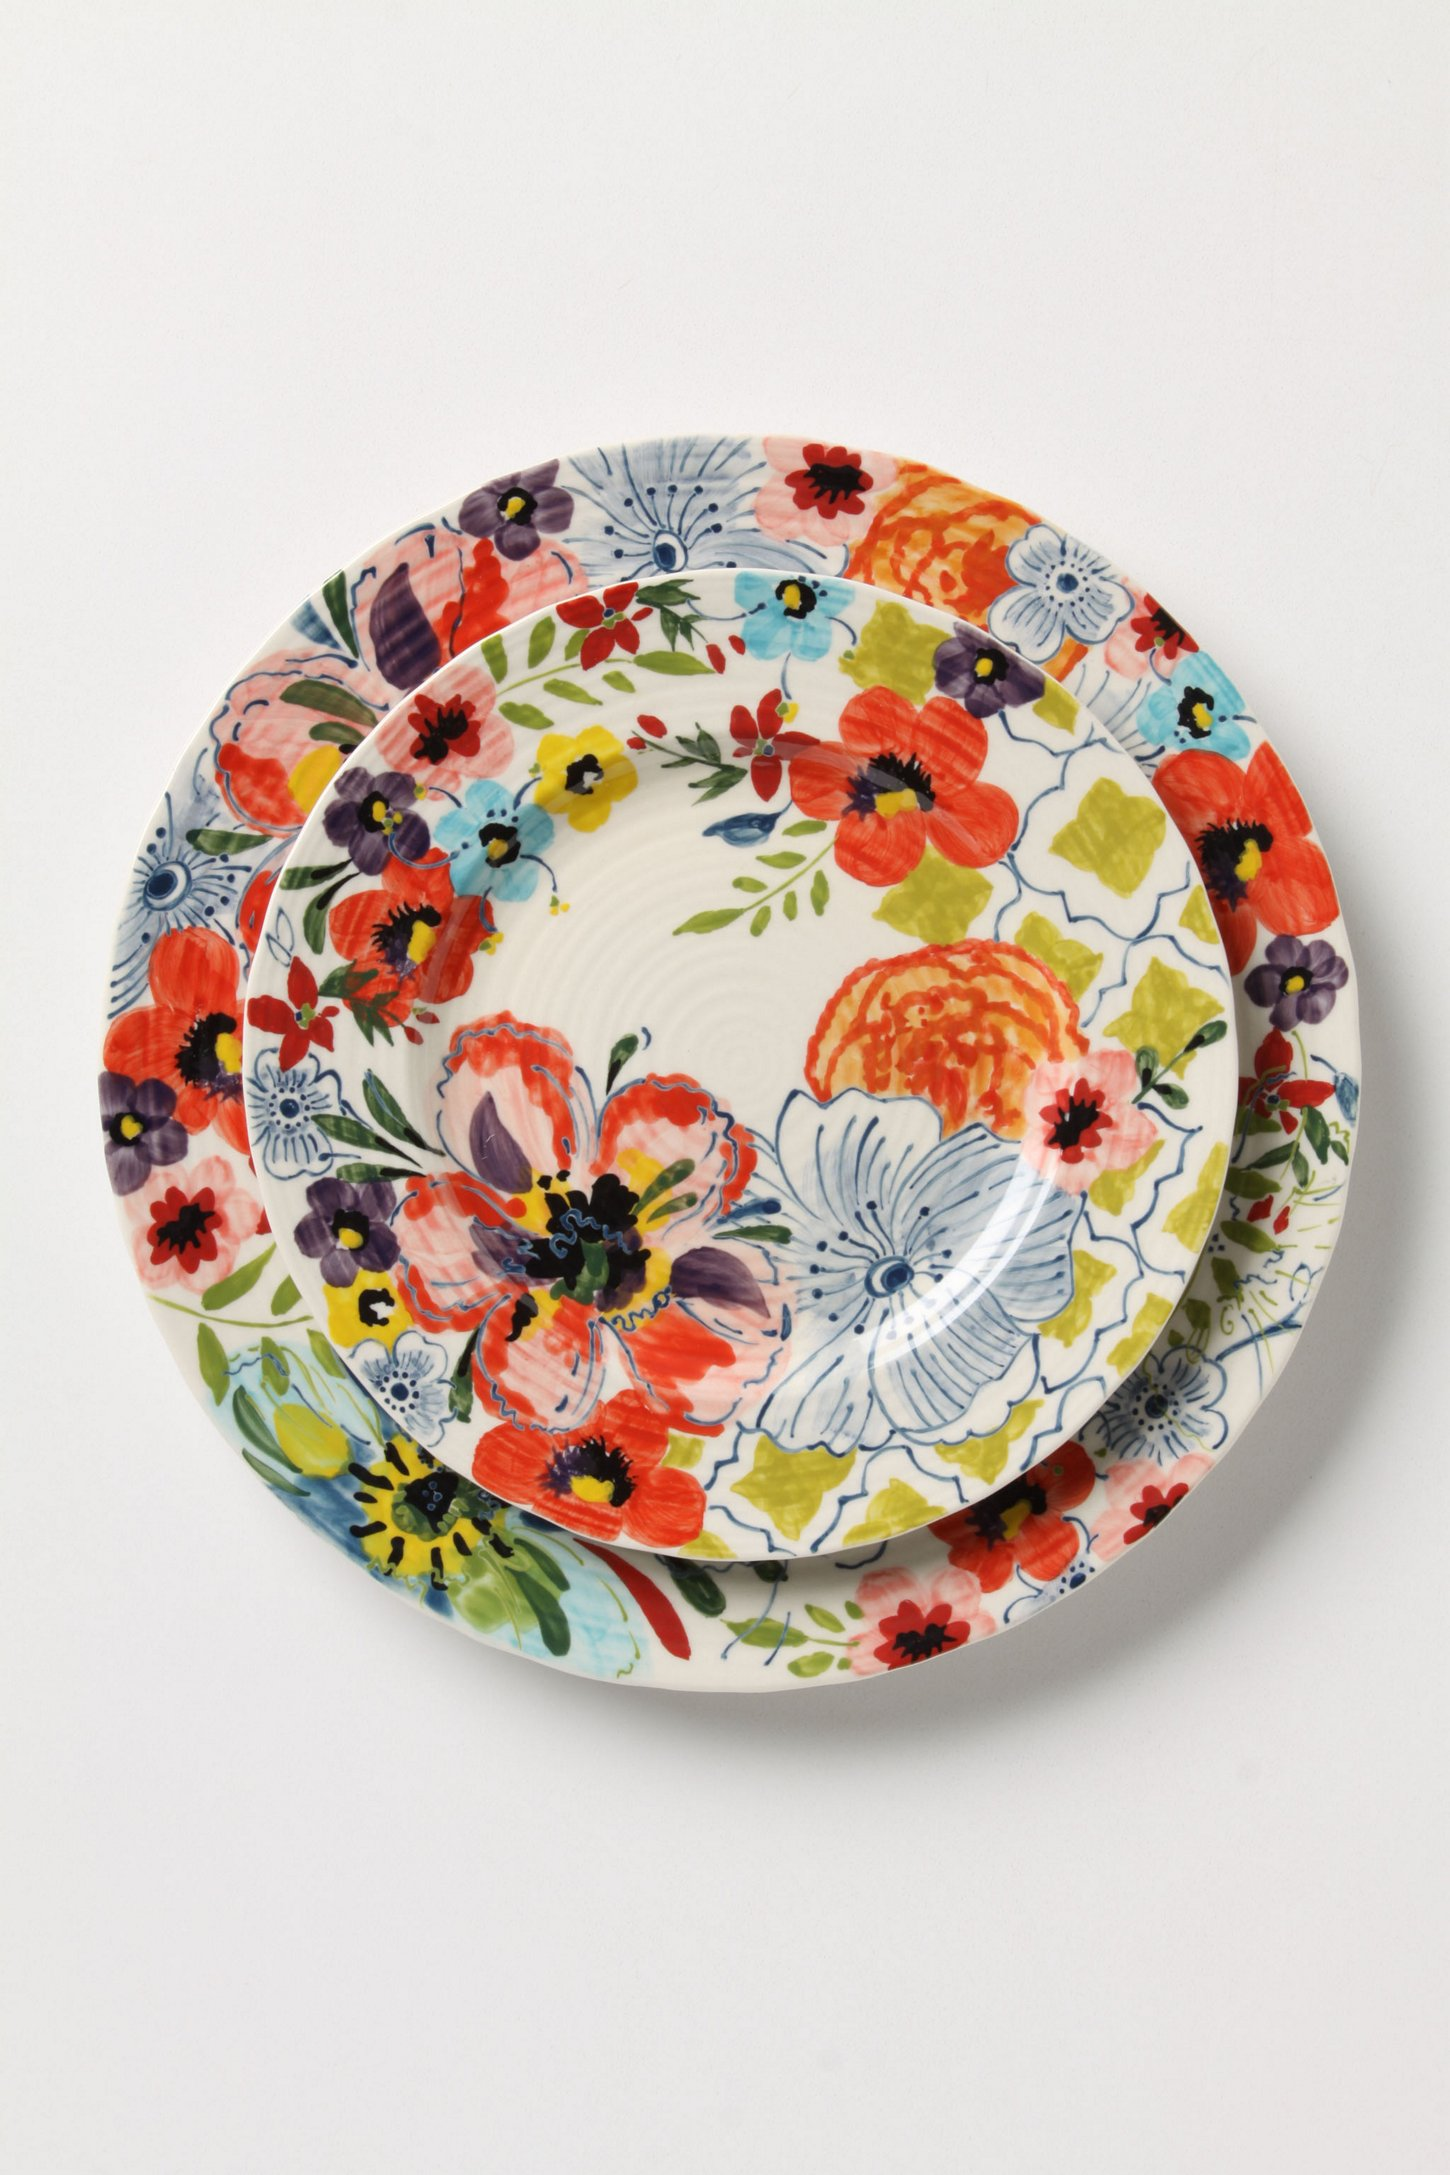 Disposable Plates - Count Paper Plates, Vintage Floral Party Supplies for Appetizer, Lunch, Dinner, and Dessert, Bridal Showers, Weddings, Gold Foil Scalloped Edge Design, x inches. by Blue Panda. $ $ 12 99 Prime. FREE Shipping on eligible orders.